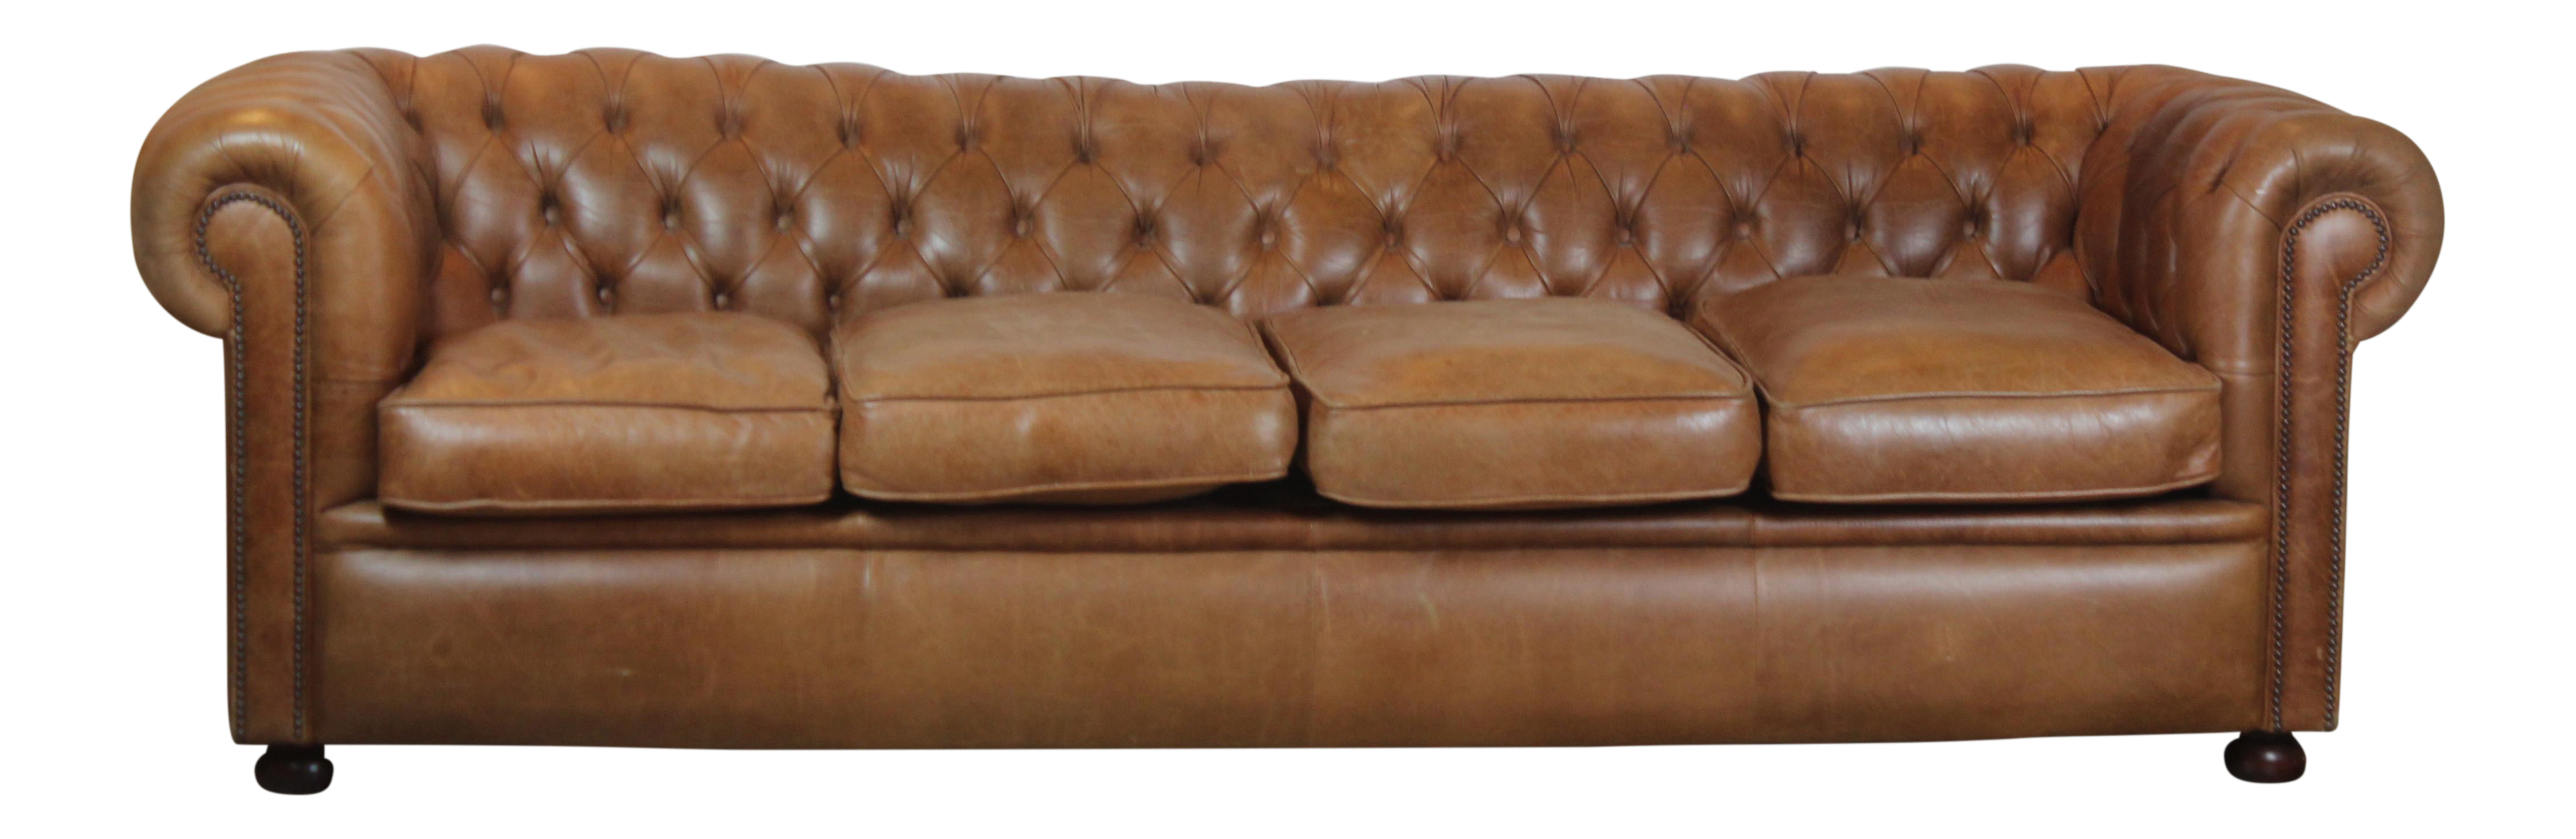 Chesterfield Style Leather Sofa Chairish